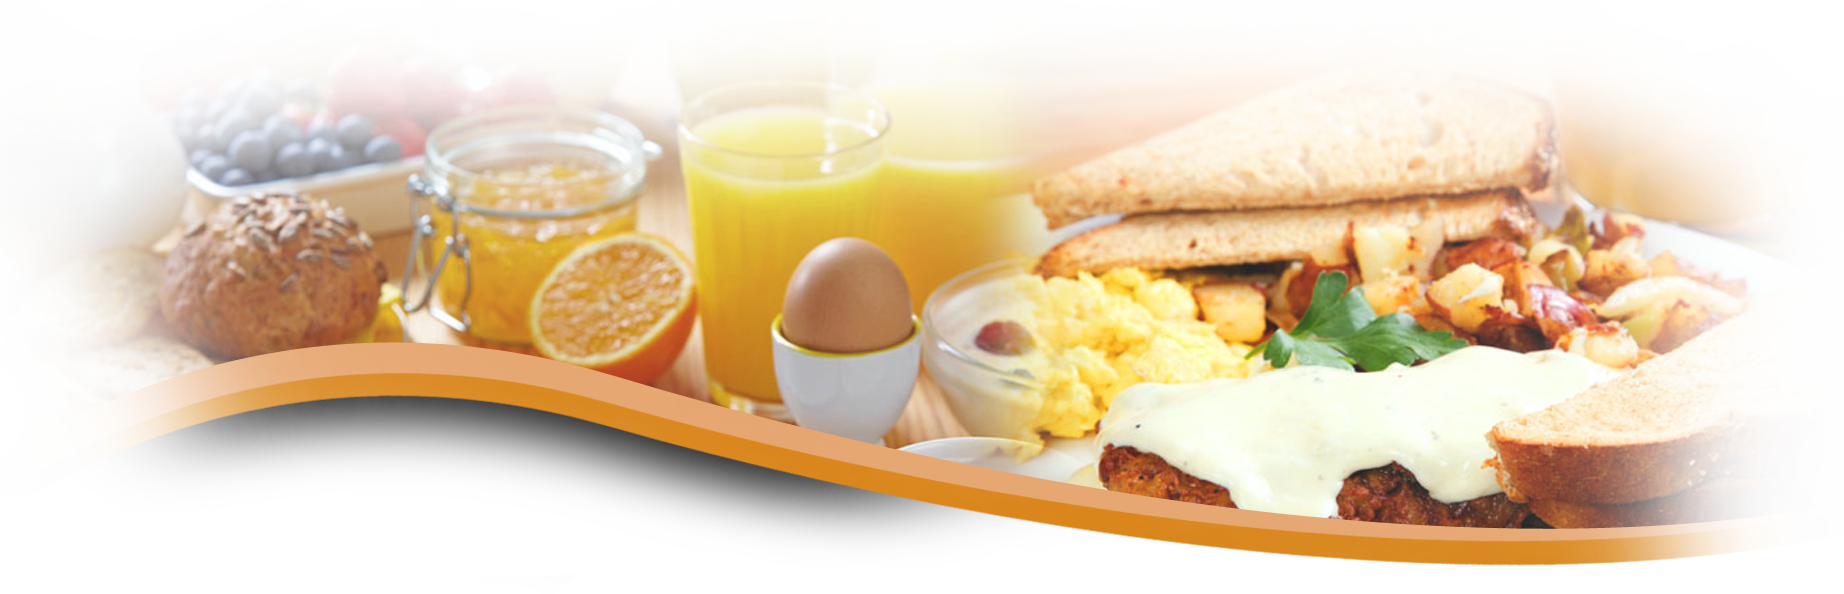 Most Healthy Foods To Eat For Breakfast